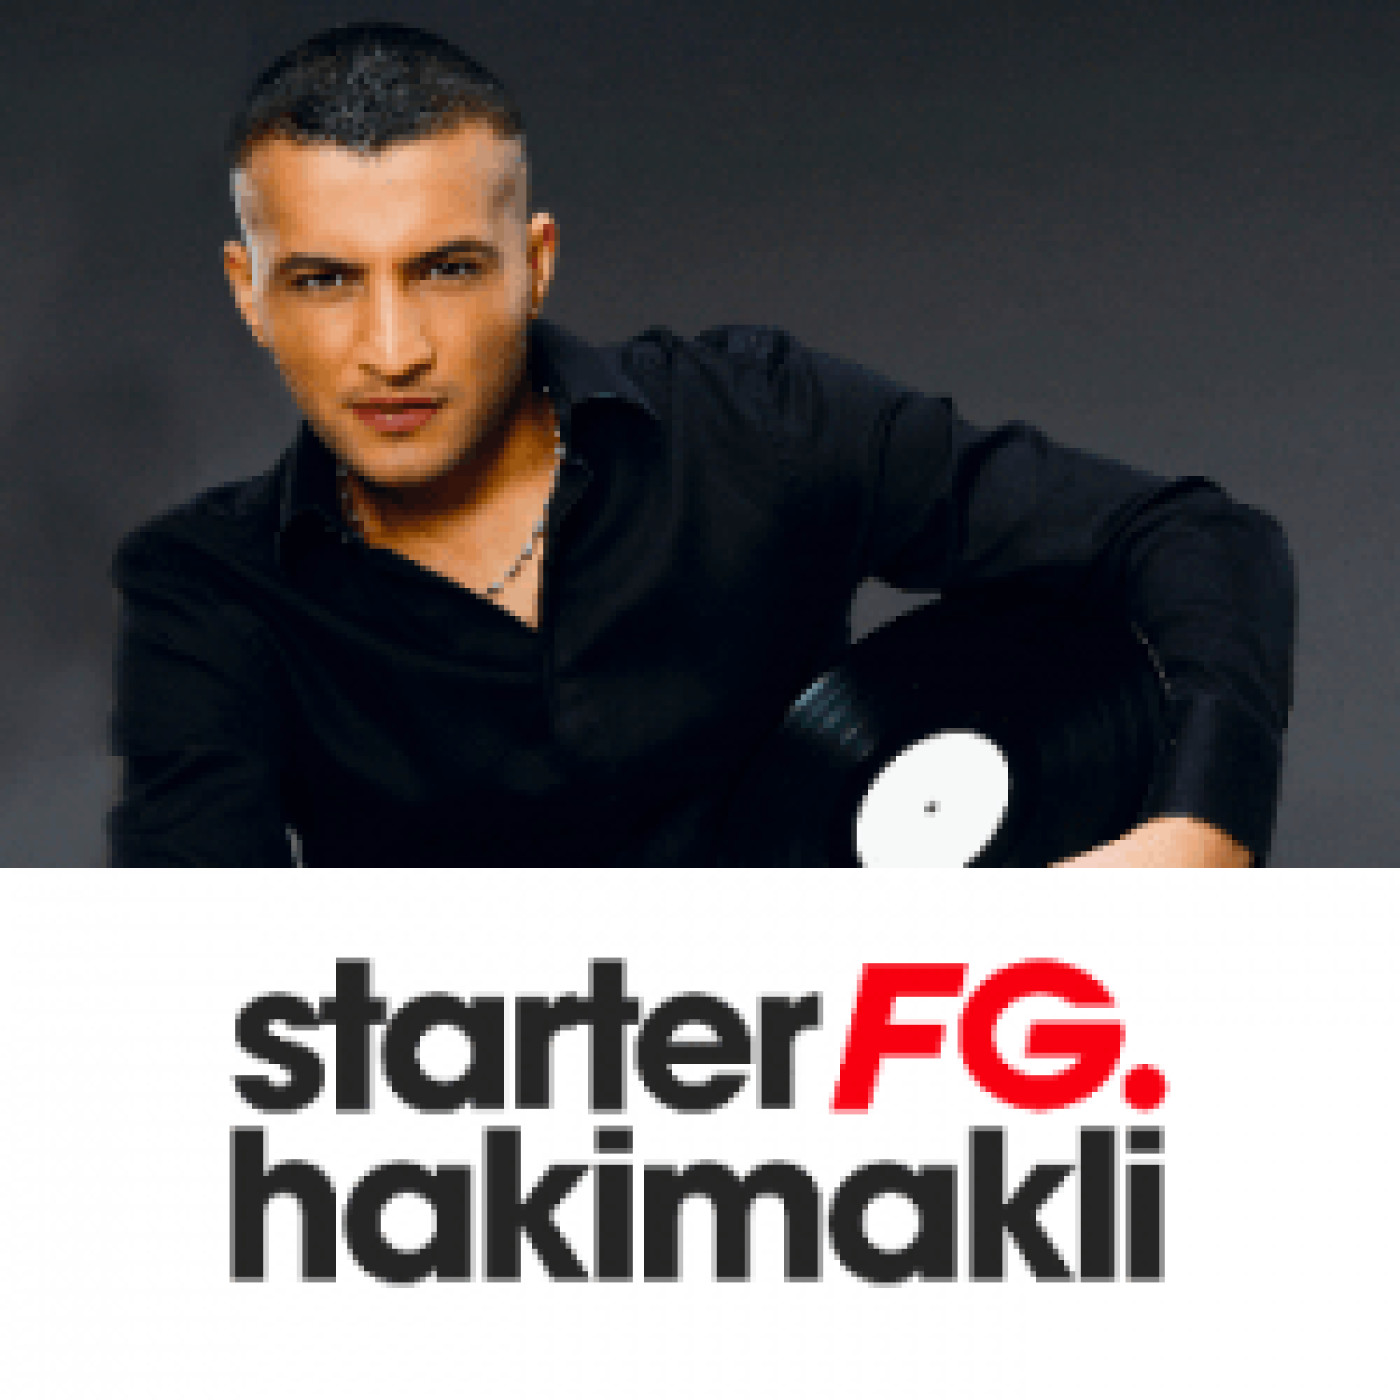 STARTER FG SPECIAL NOUVEL AN BY HAKIMAKLI